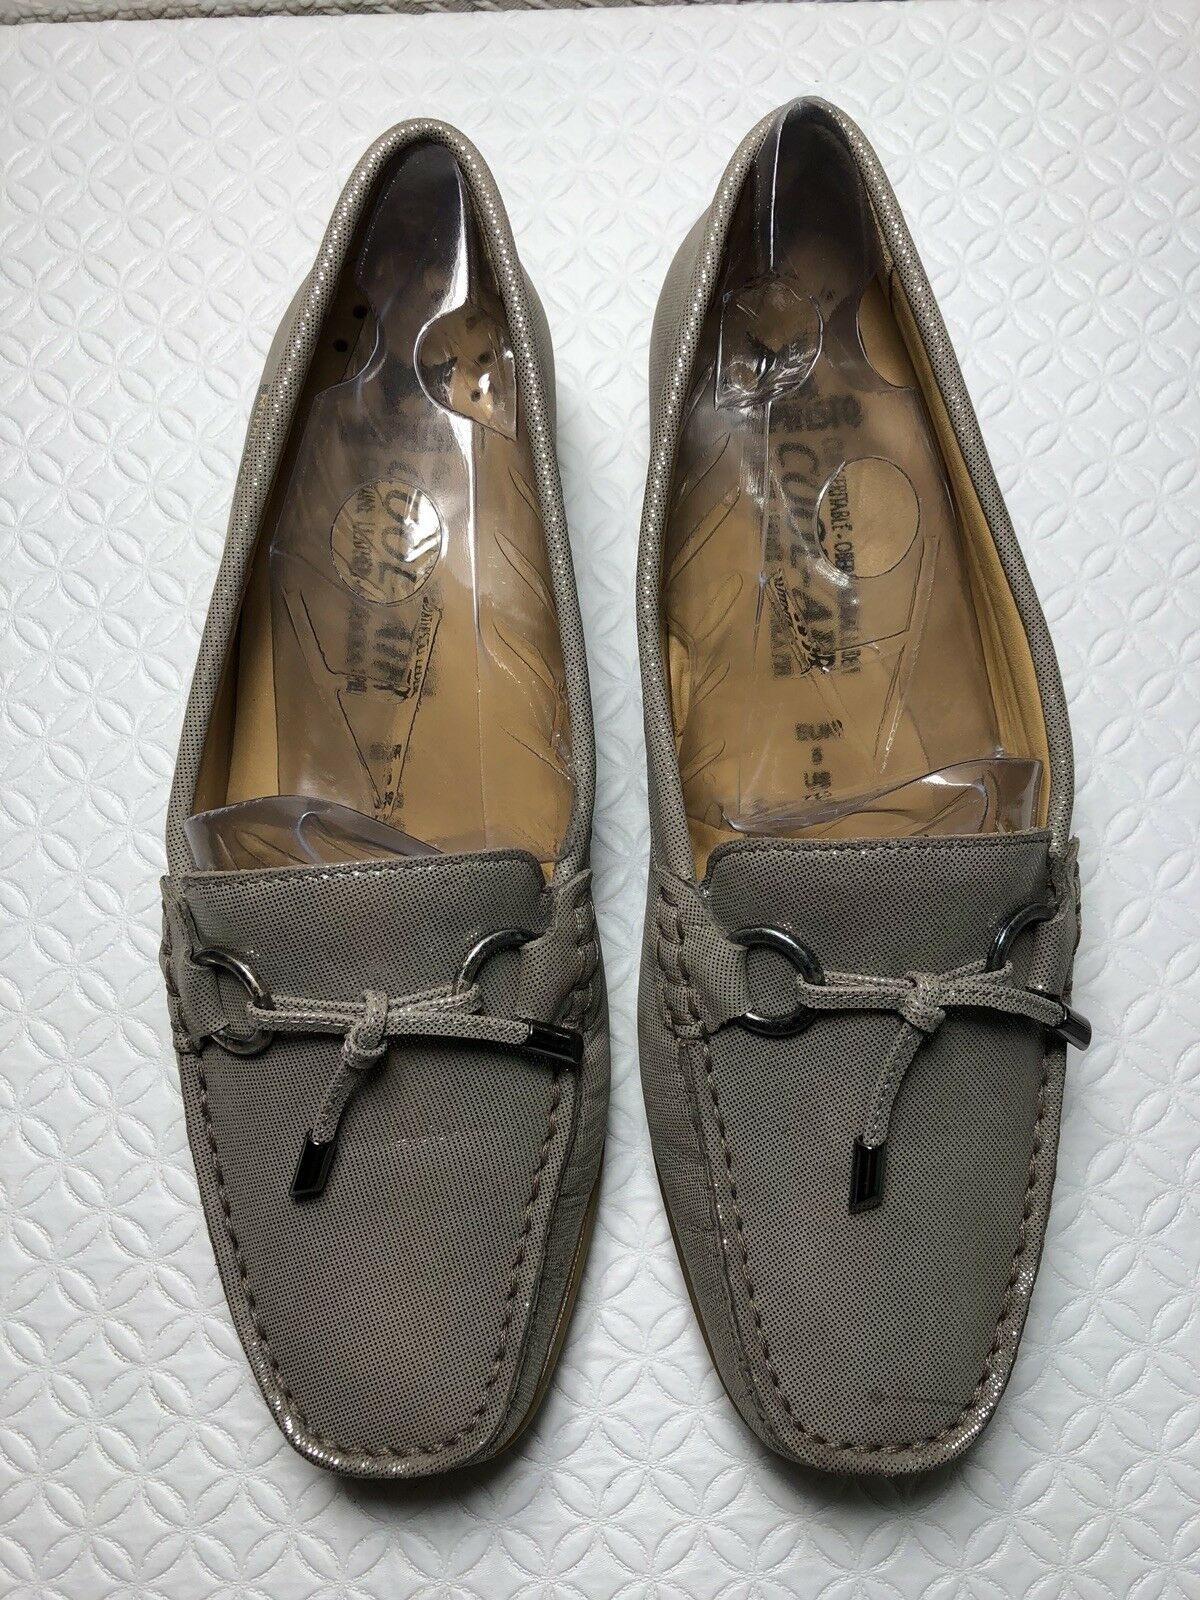 Mephisto Cool Air Women's Taupe Patent Leather Slip On Loafers Size-7.5